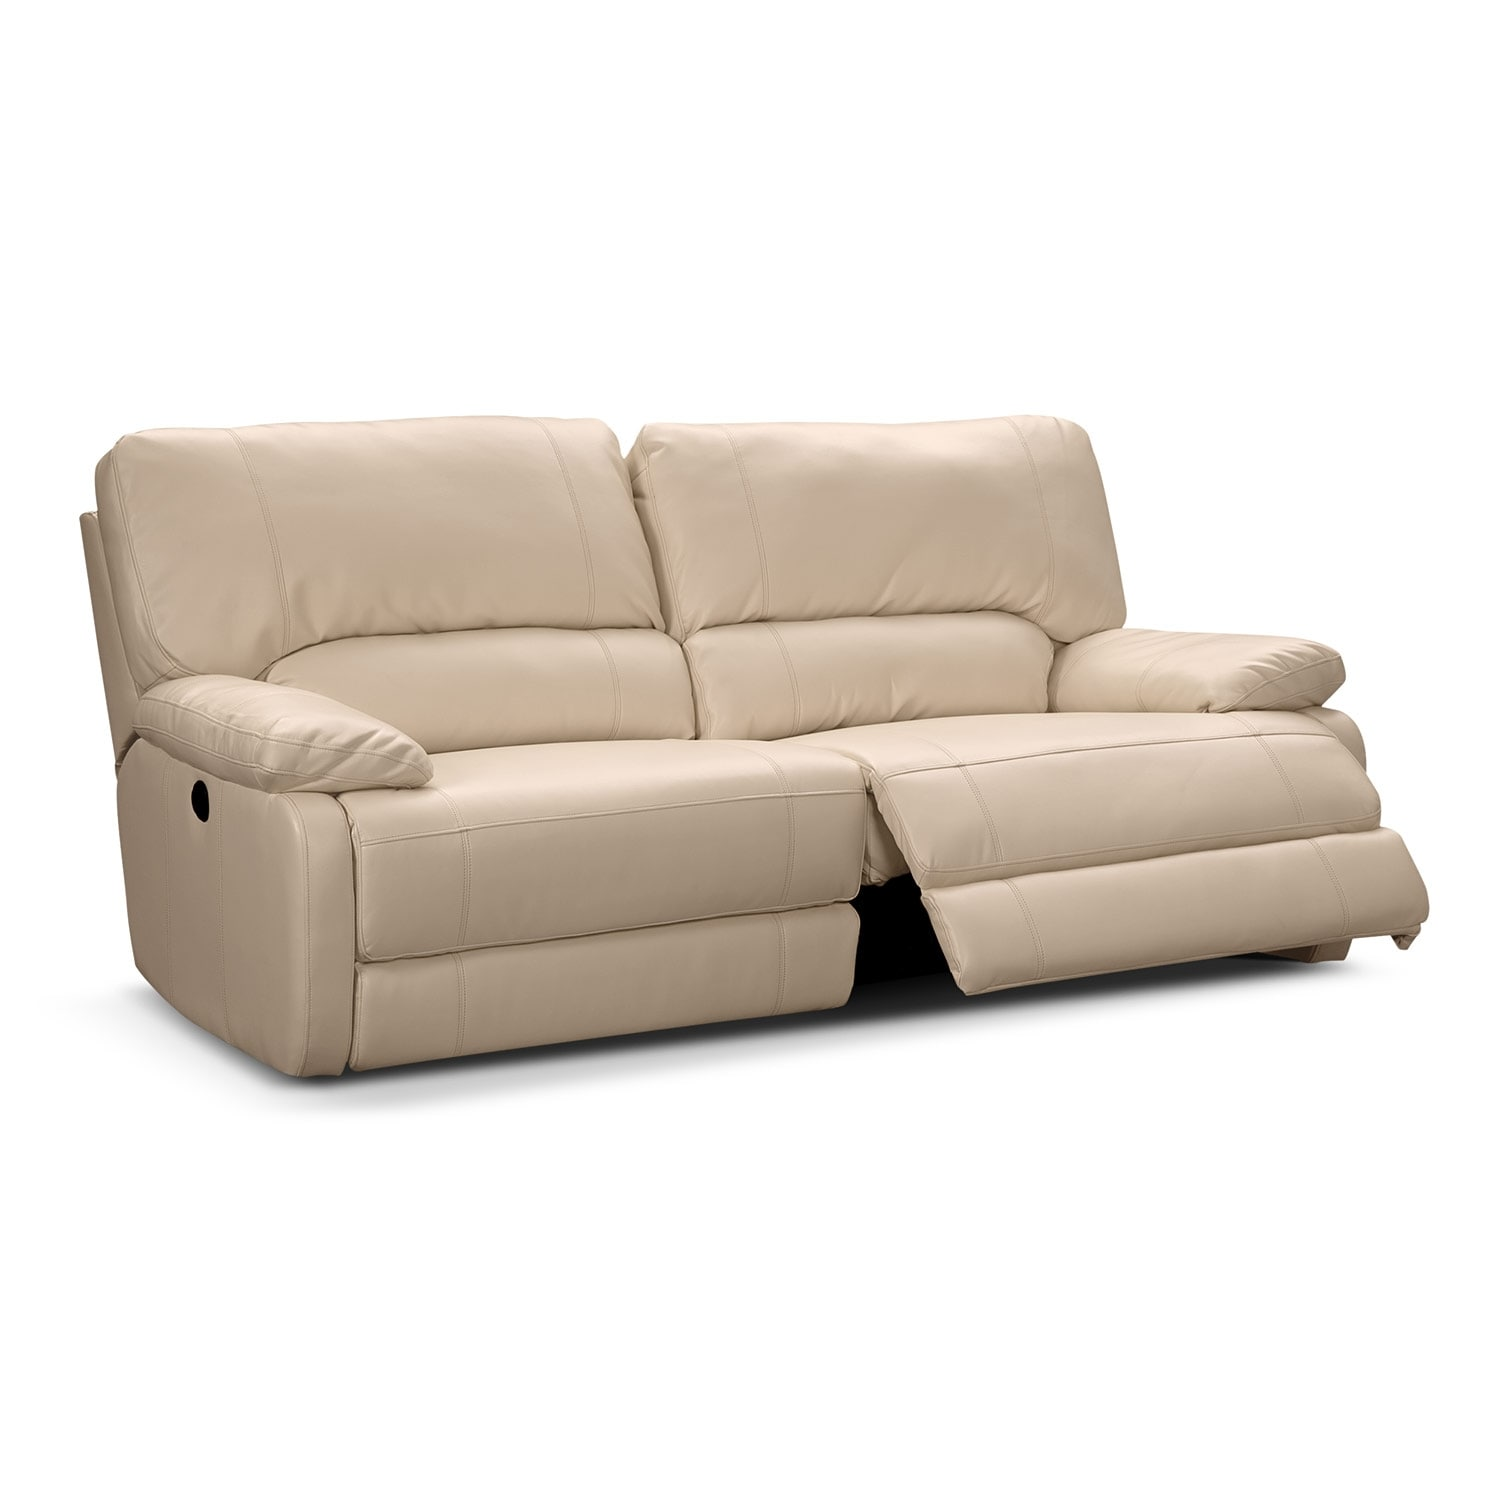 Coronado leather power reclining sofa value city furniture Reclining loveseat sale